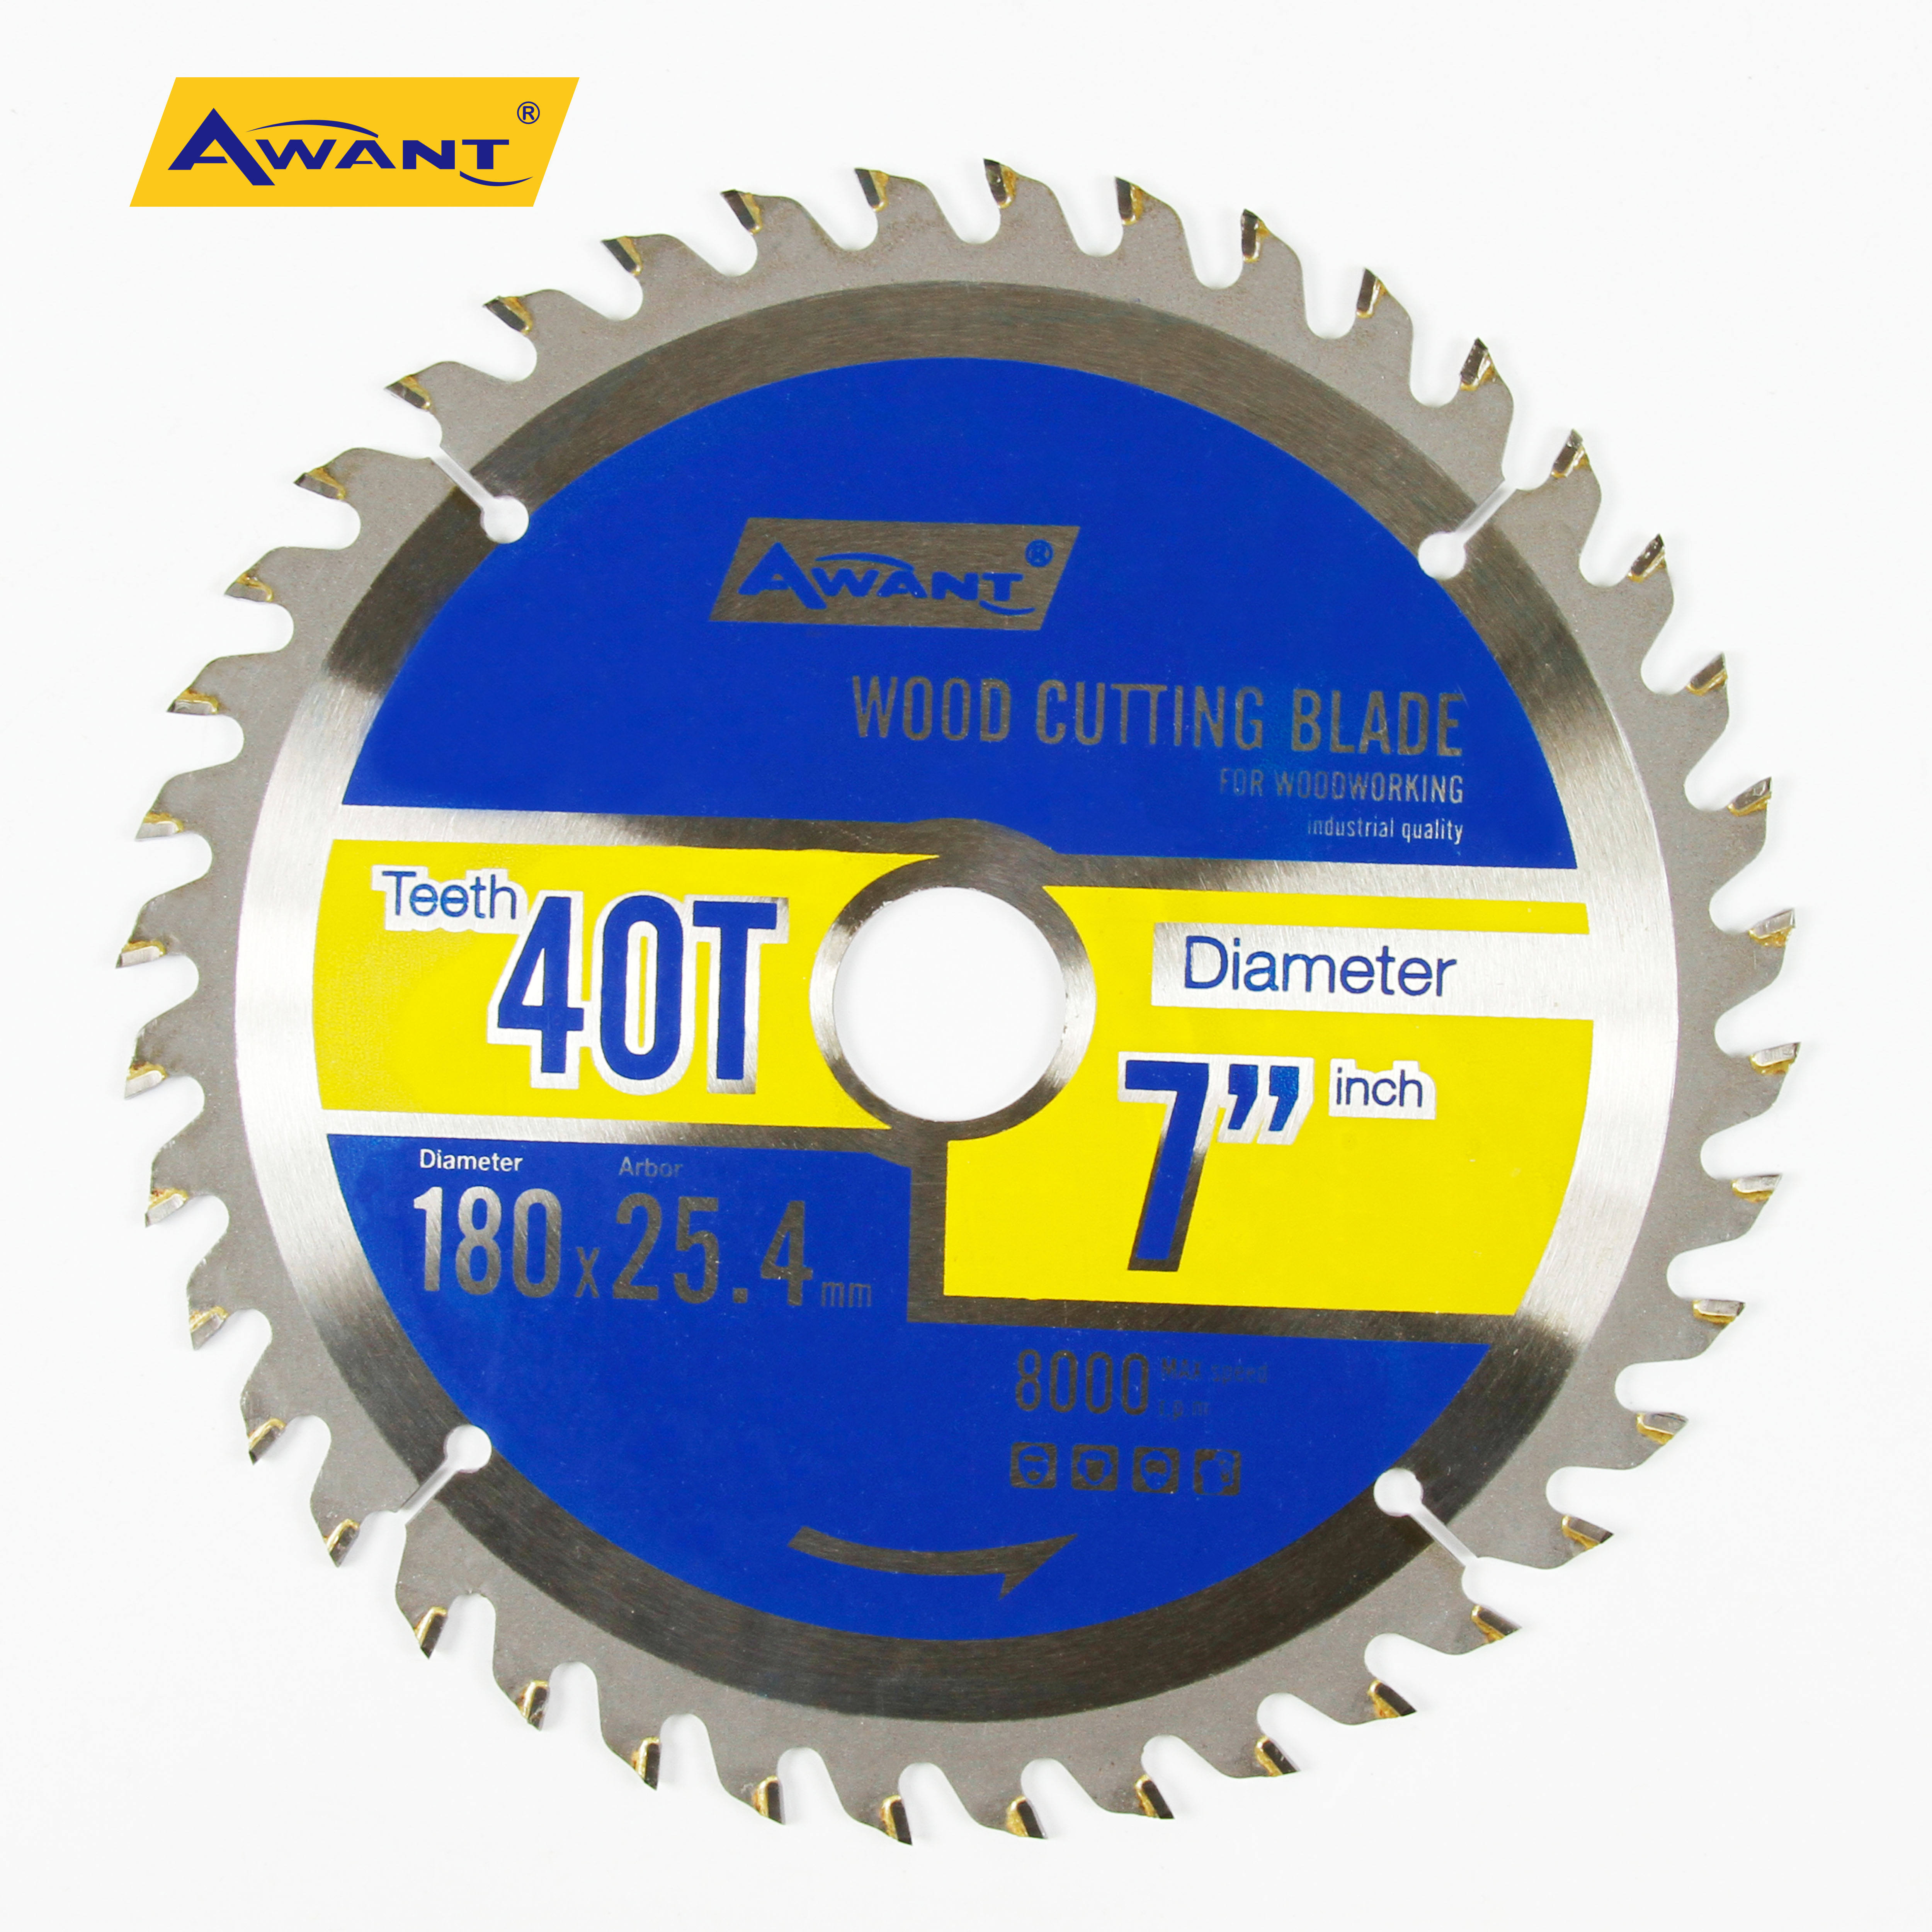 Circular Saw Blade 7 1/4 inch TCT Saw Blade 180mm for Wood Plastics Laminate Steel